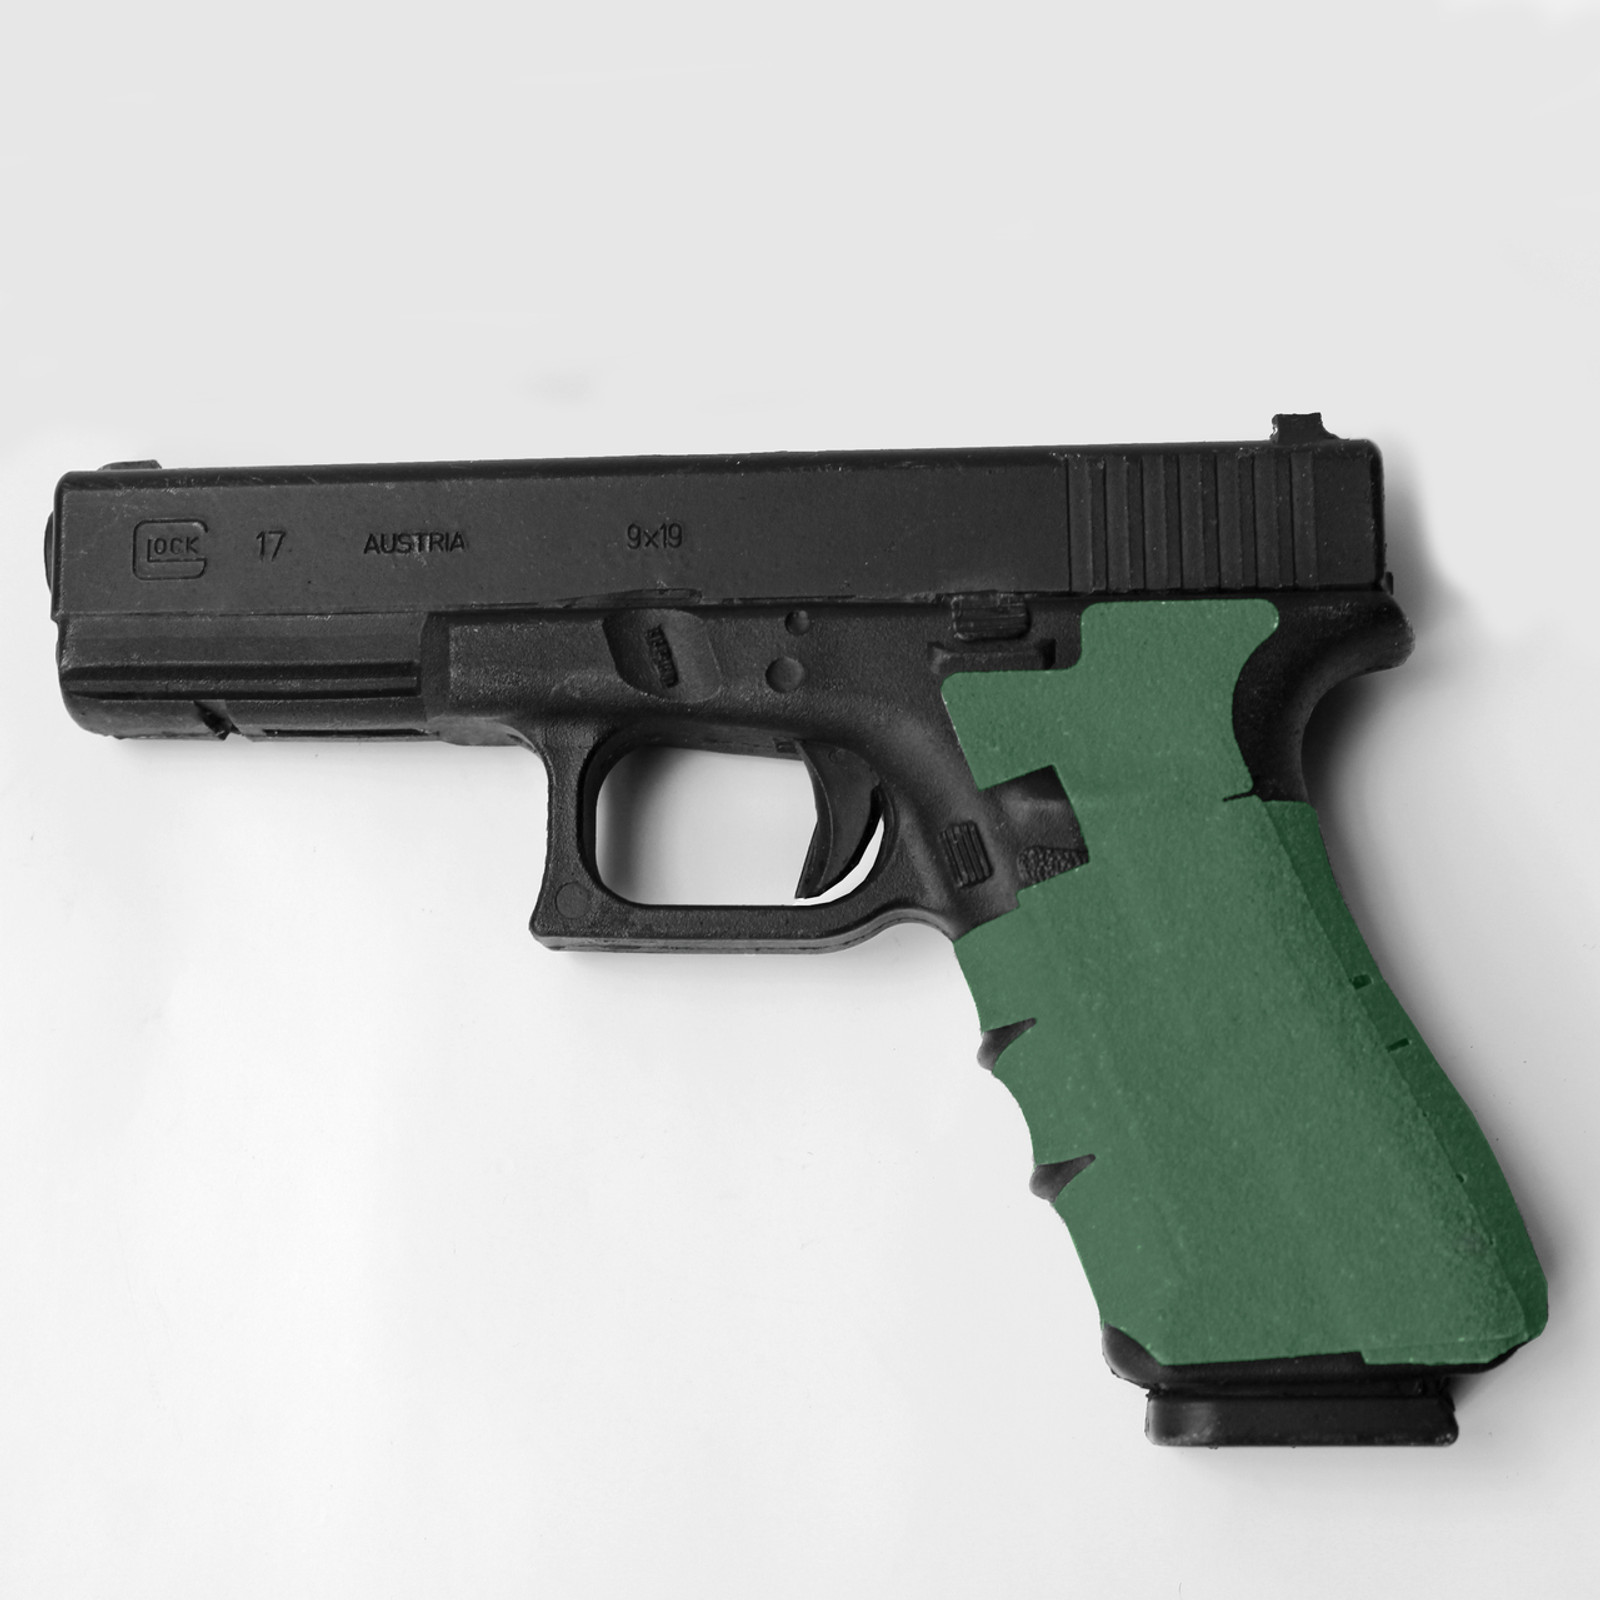 Operator Grip™ for Glock